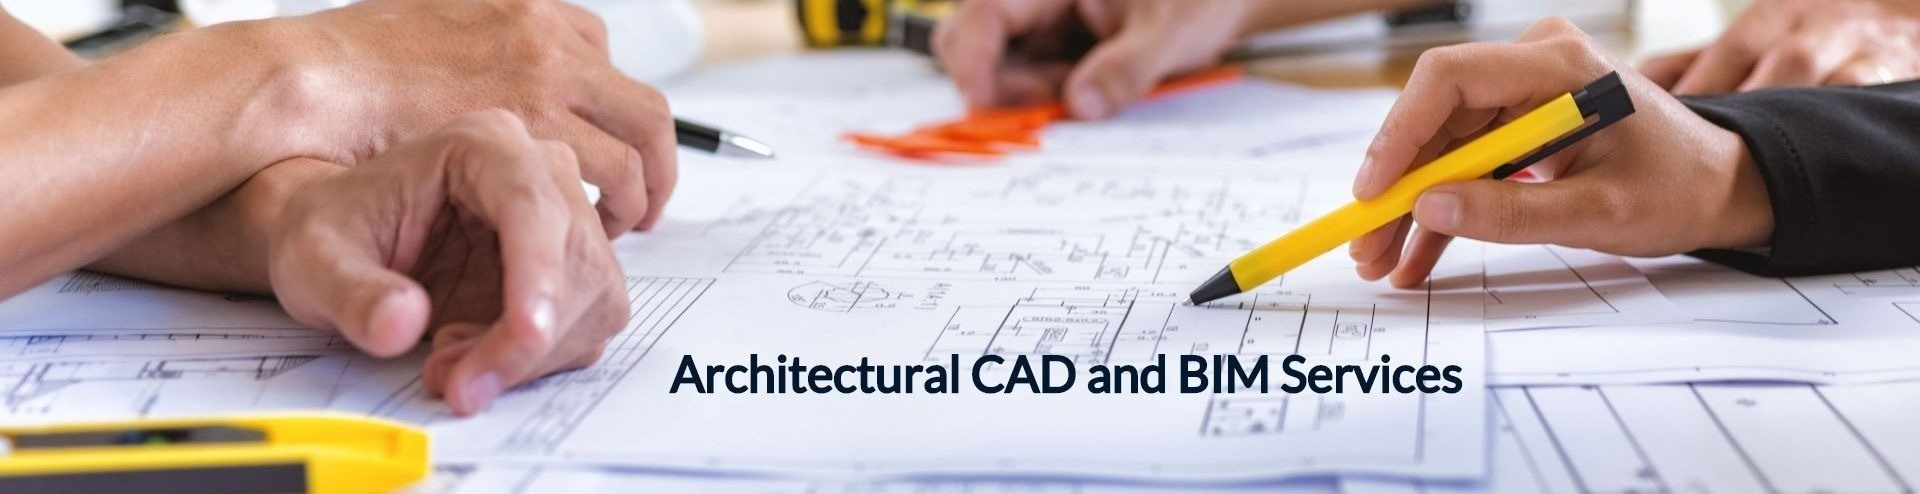 Architectural CAD and BIM Services The AEC Associates